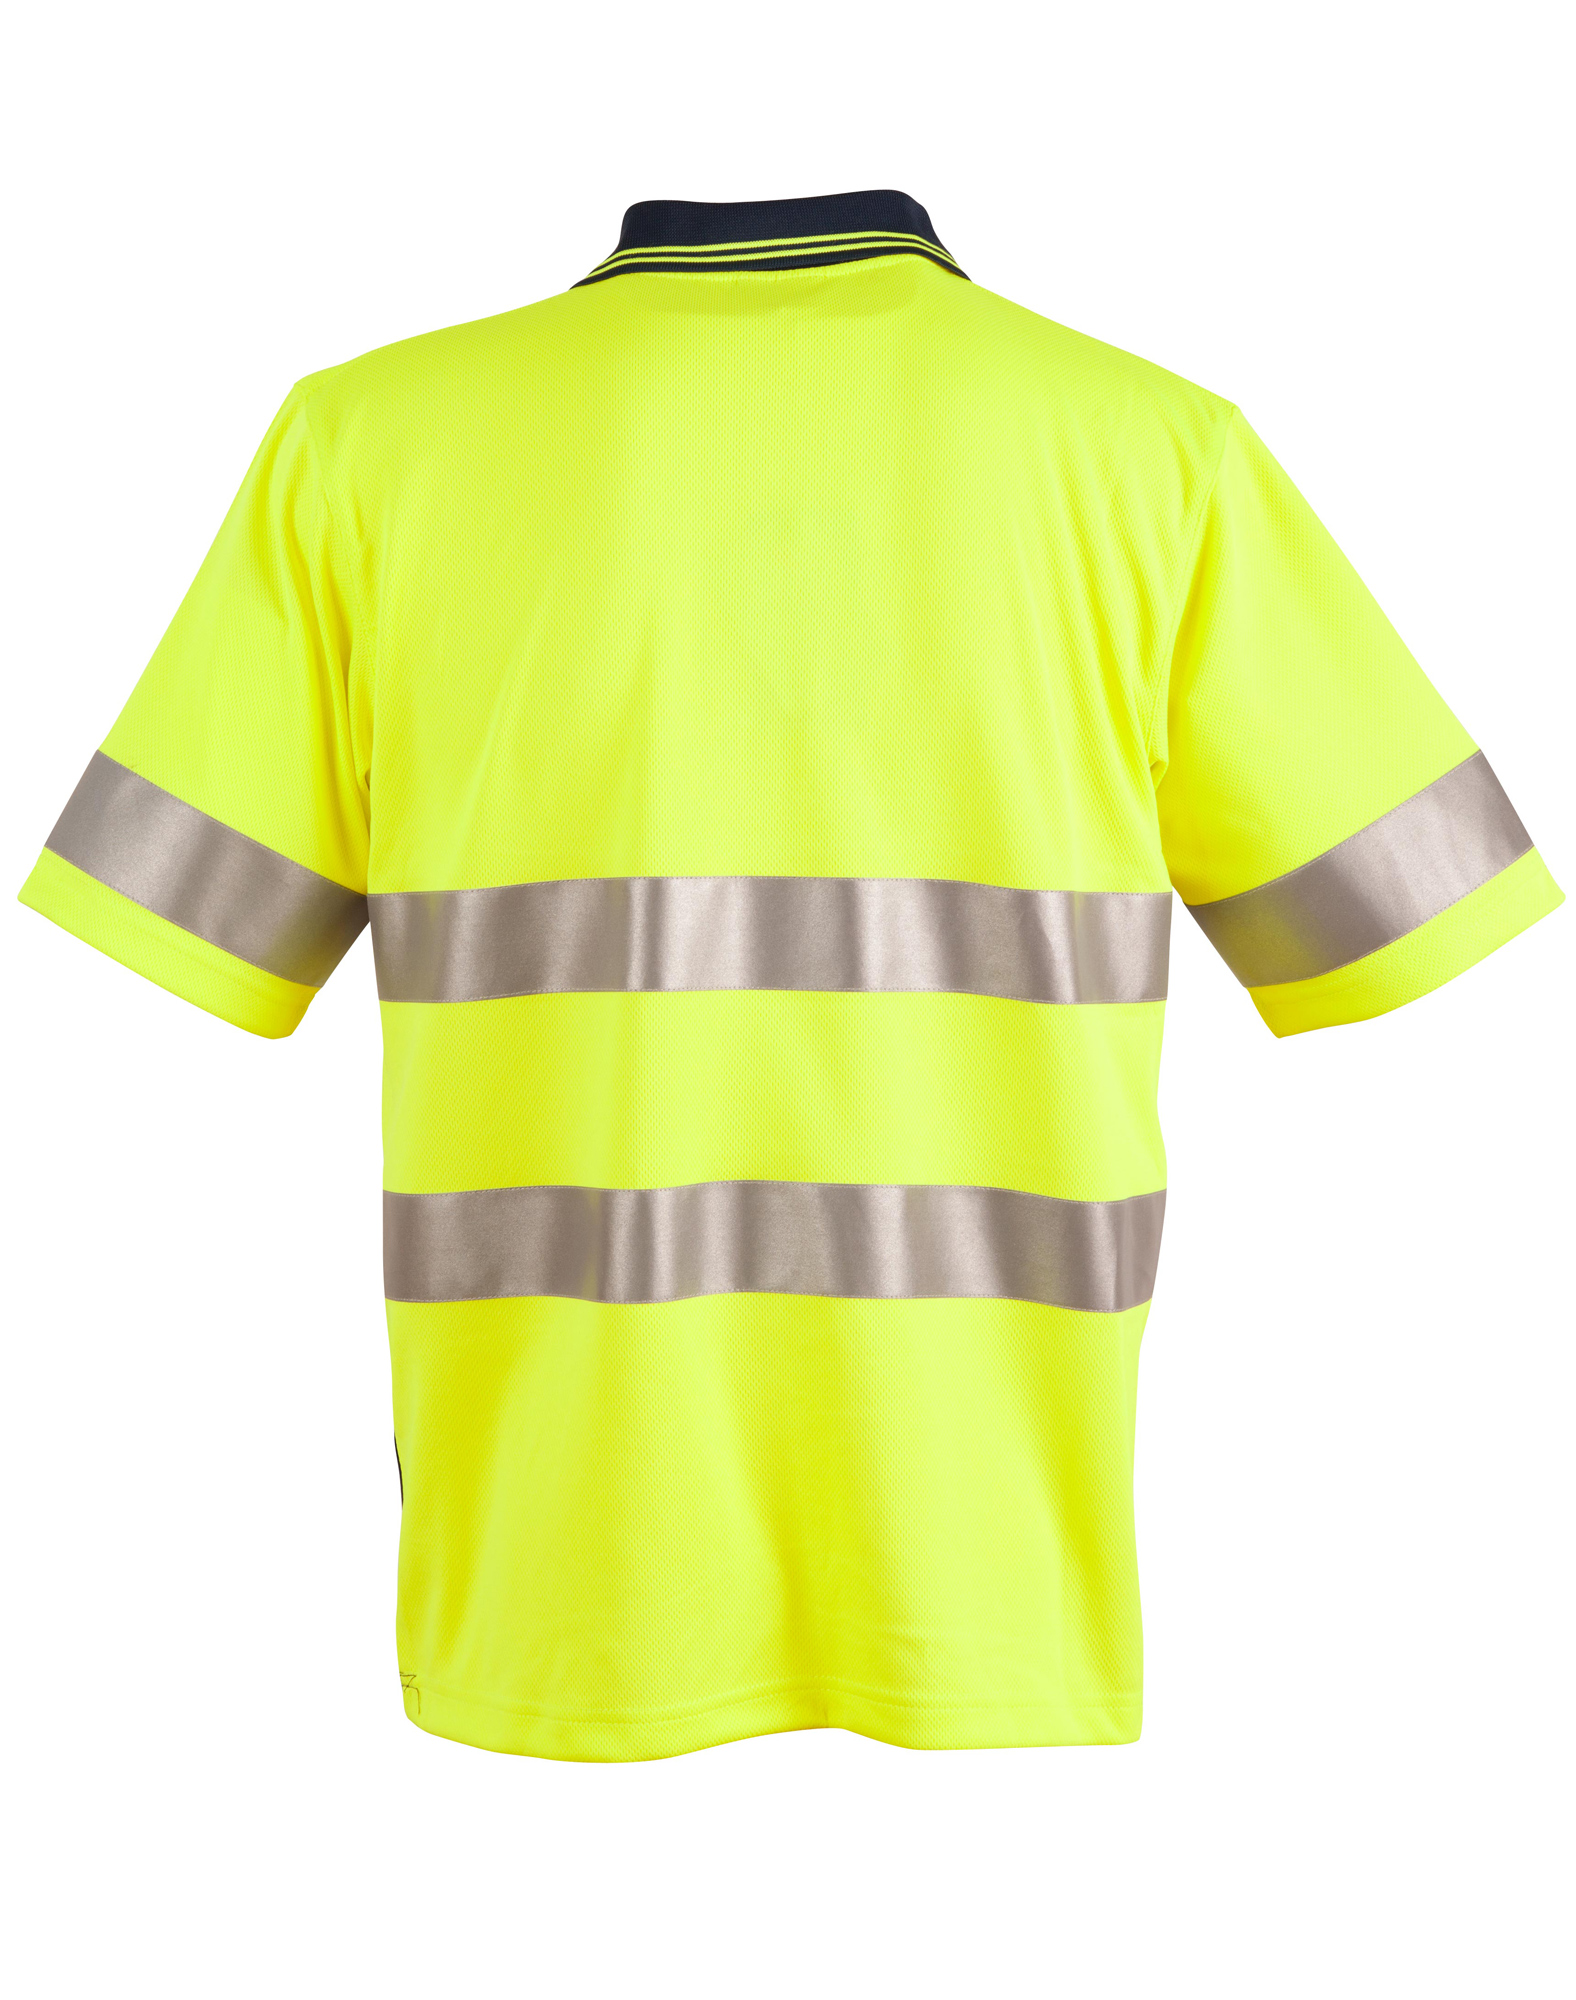 https://s3-ap-southeast-1.amazonaws.com/ws-imgs/WORKWEAR/SW17A_Yellow.Navy_Back_l.jpg